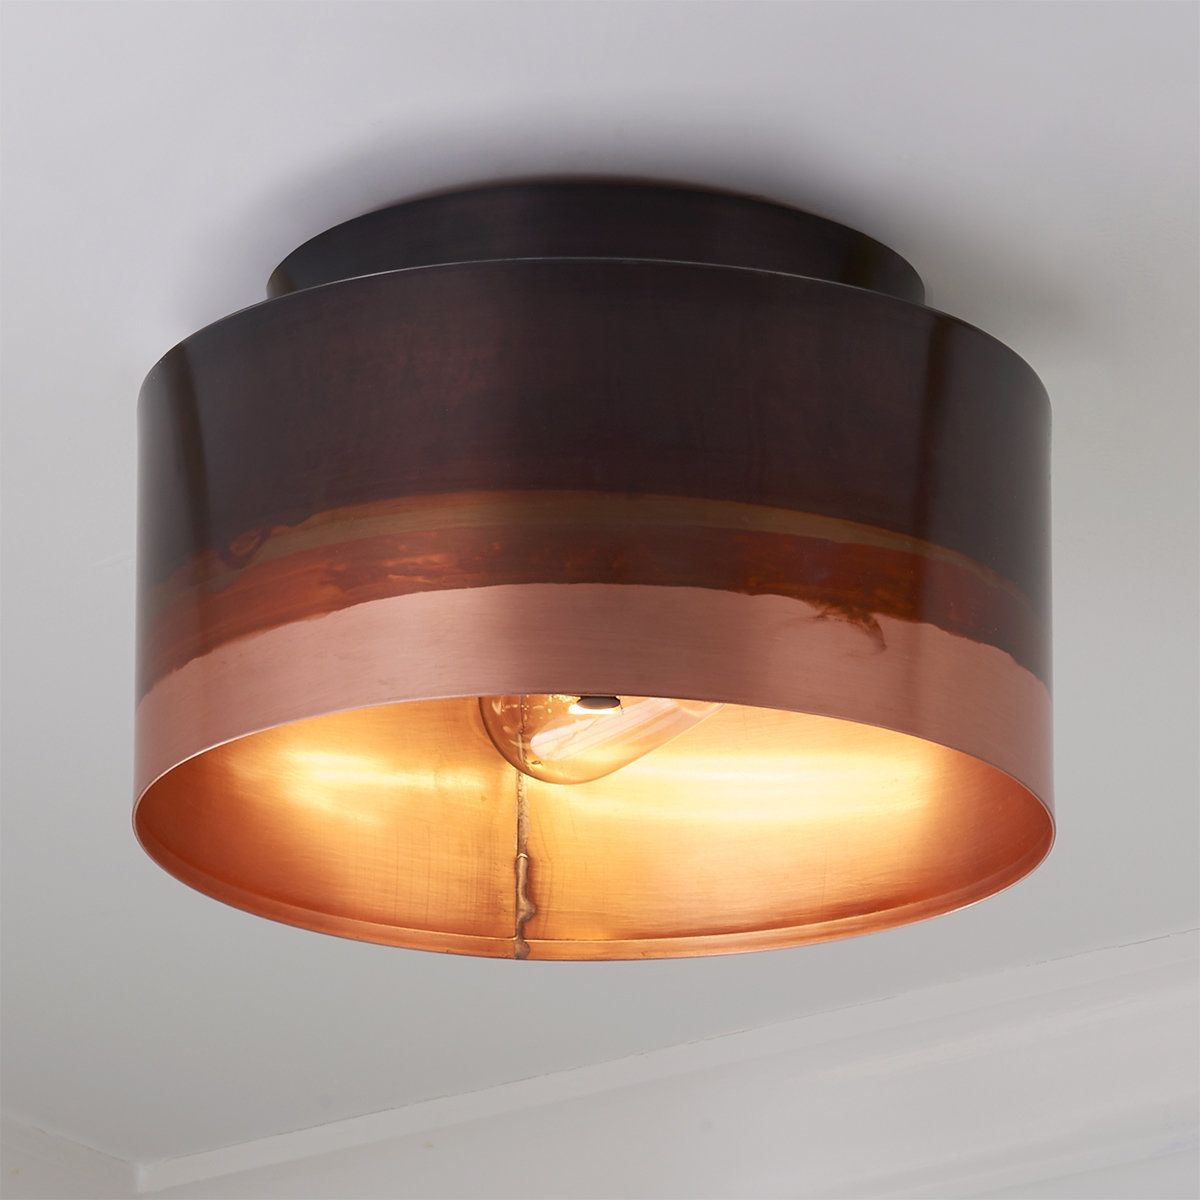 Copper Ombre Ceiling Light Ceiling Lights Copper Ceiling Lights Copper Ombre